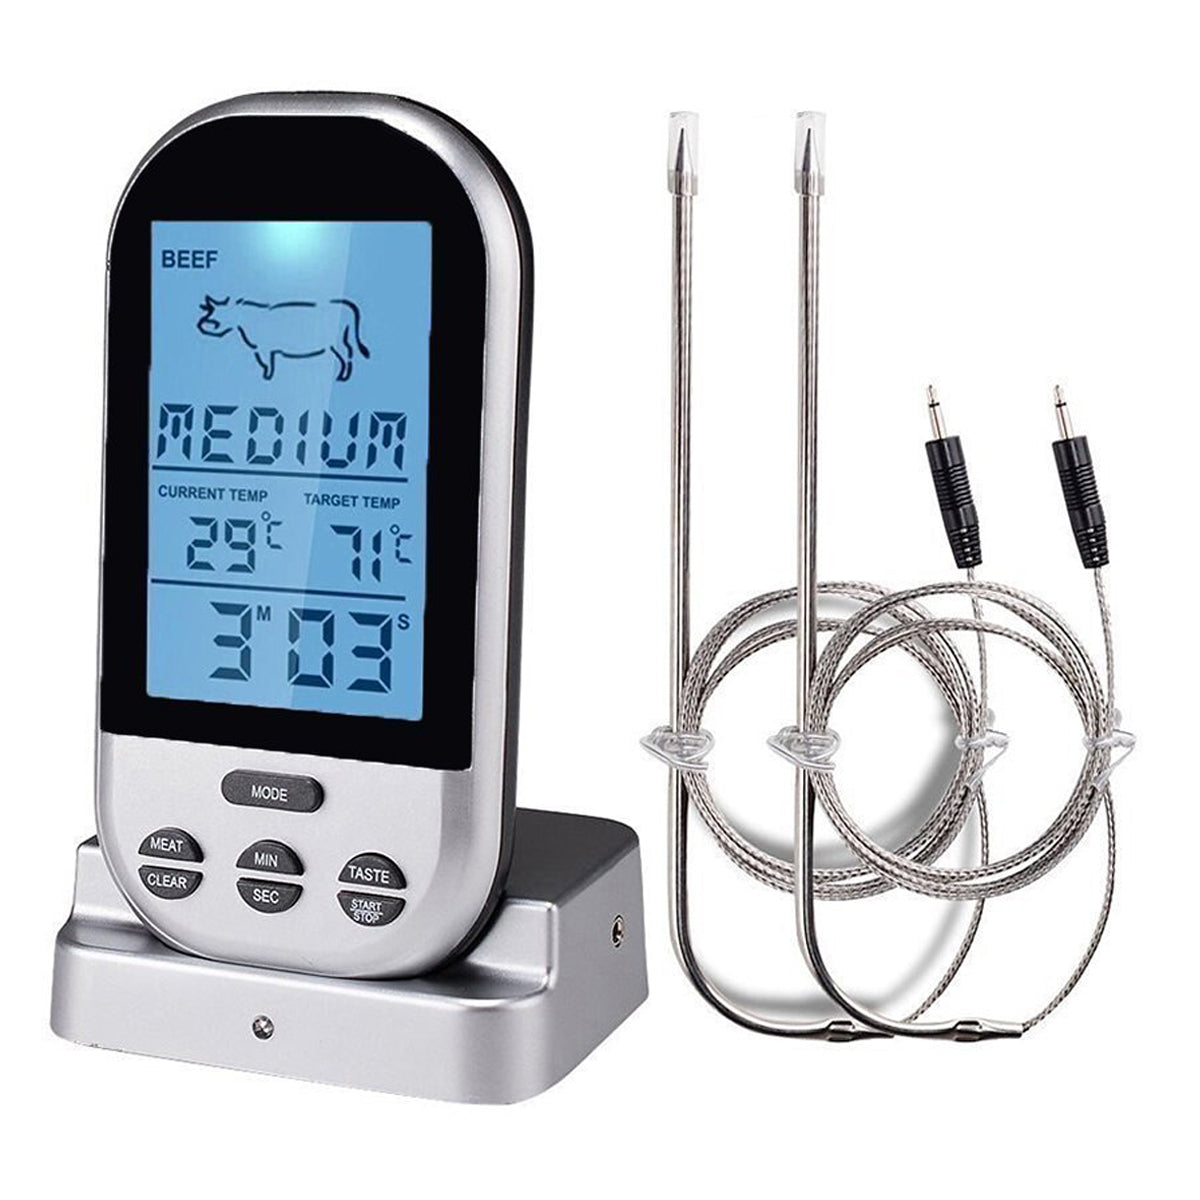 LCD Wireless Thermometer Barbecue Timer Digital Probe Cooking Thermometer Food Temperature Gauge